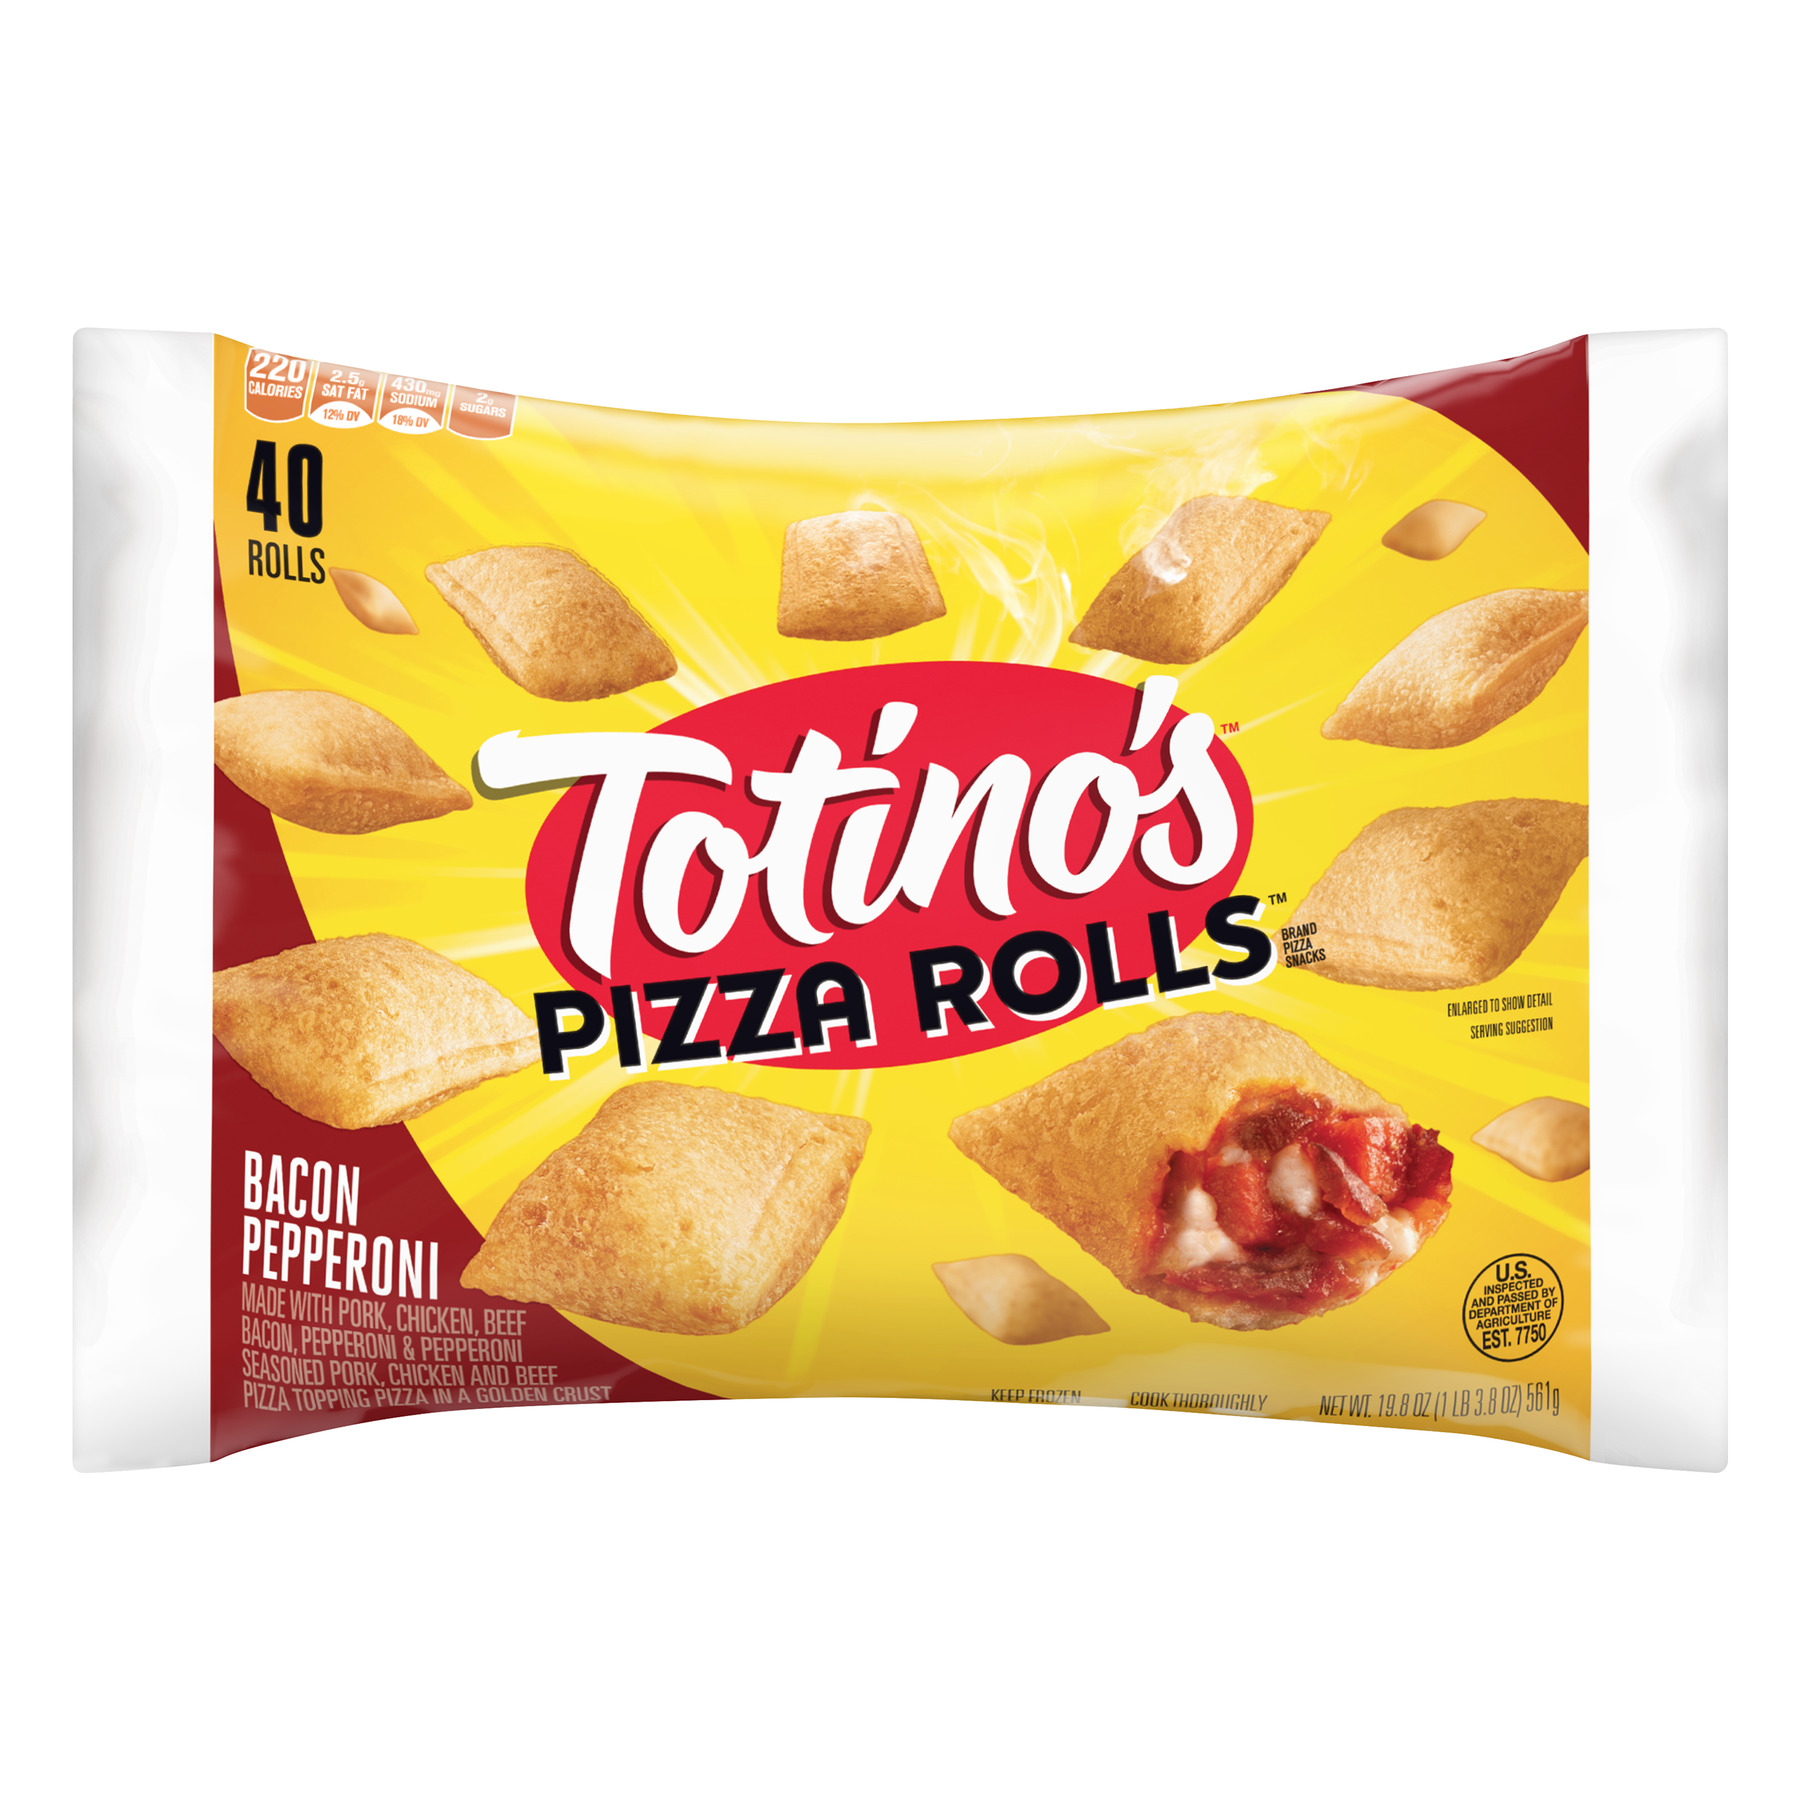 Totino's Pepperoni and Bacon Pizza Rolls Snacks, 19 8 oz